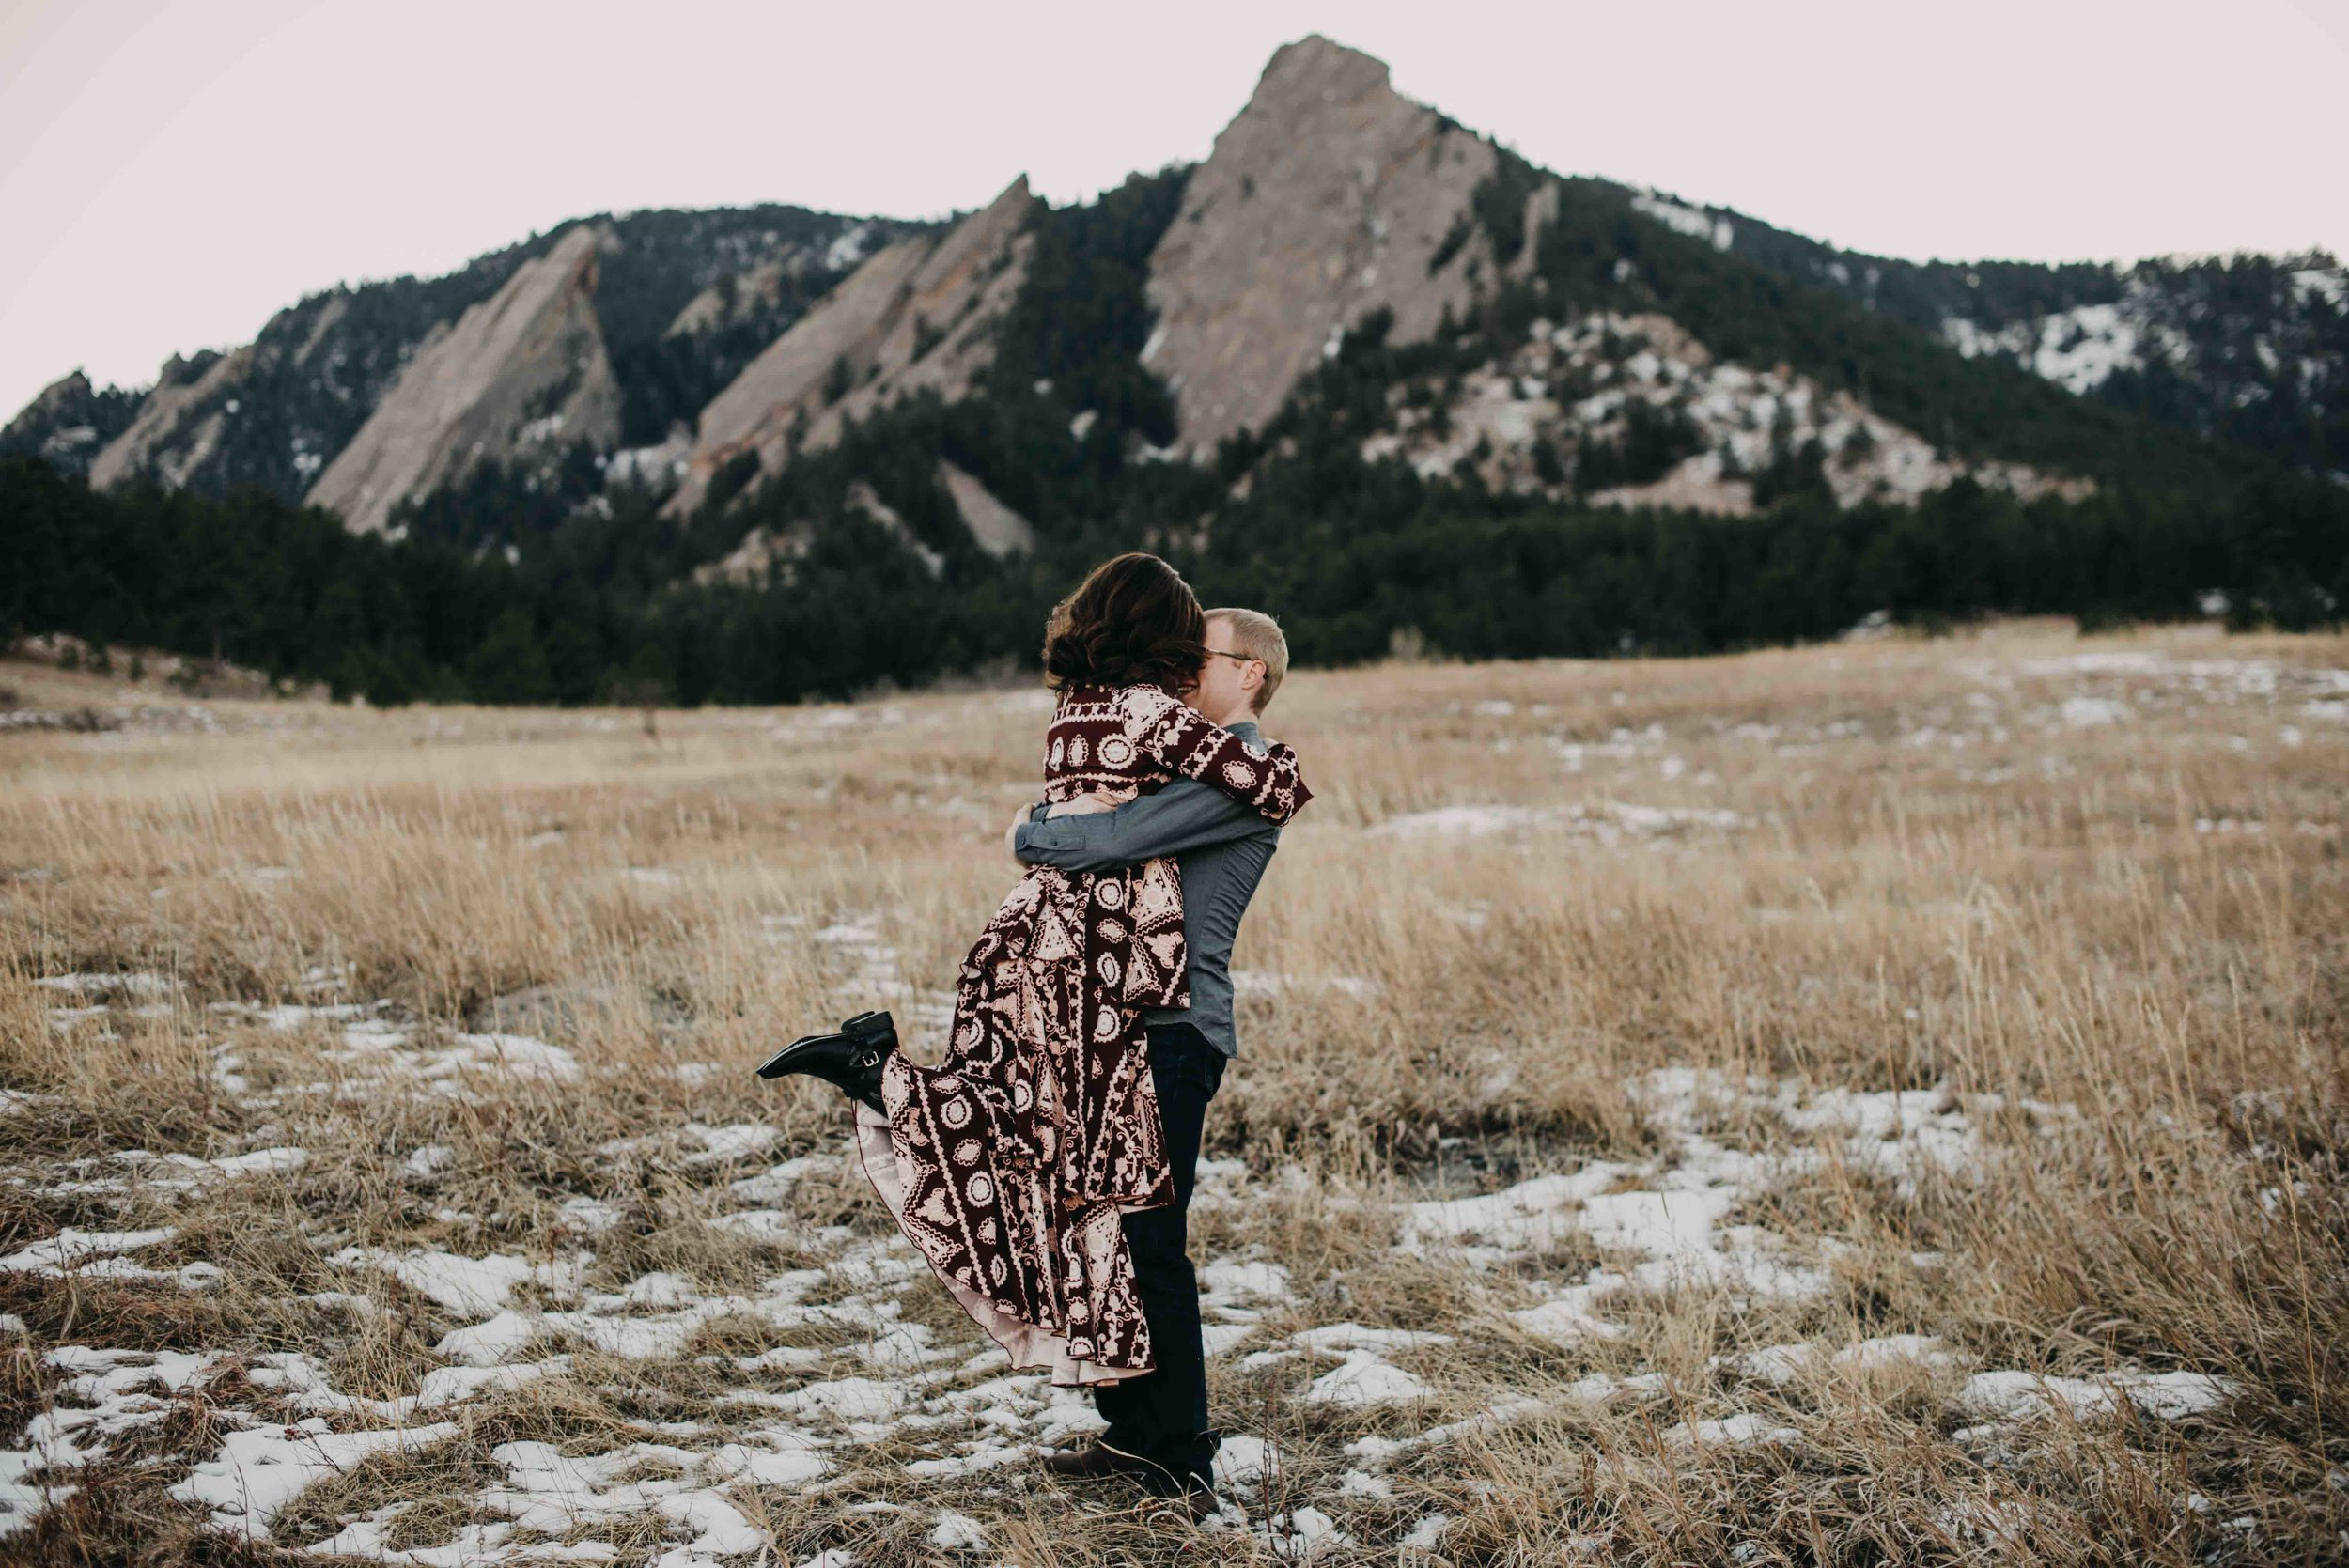 Trinity and Peter dancing at the base of the flatirons during their Chautauqua Couples Portrait session.